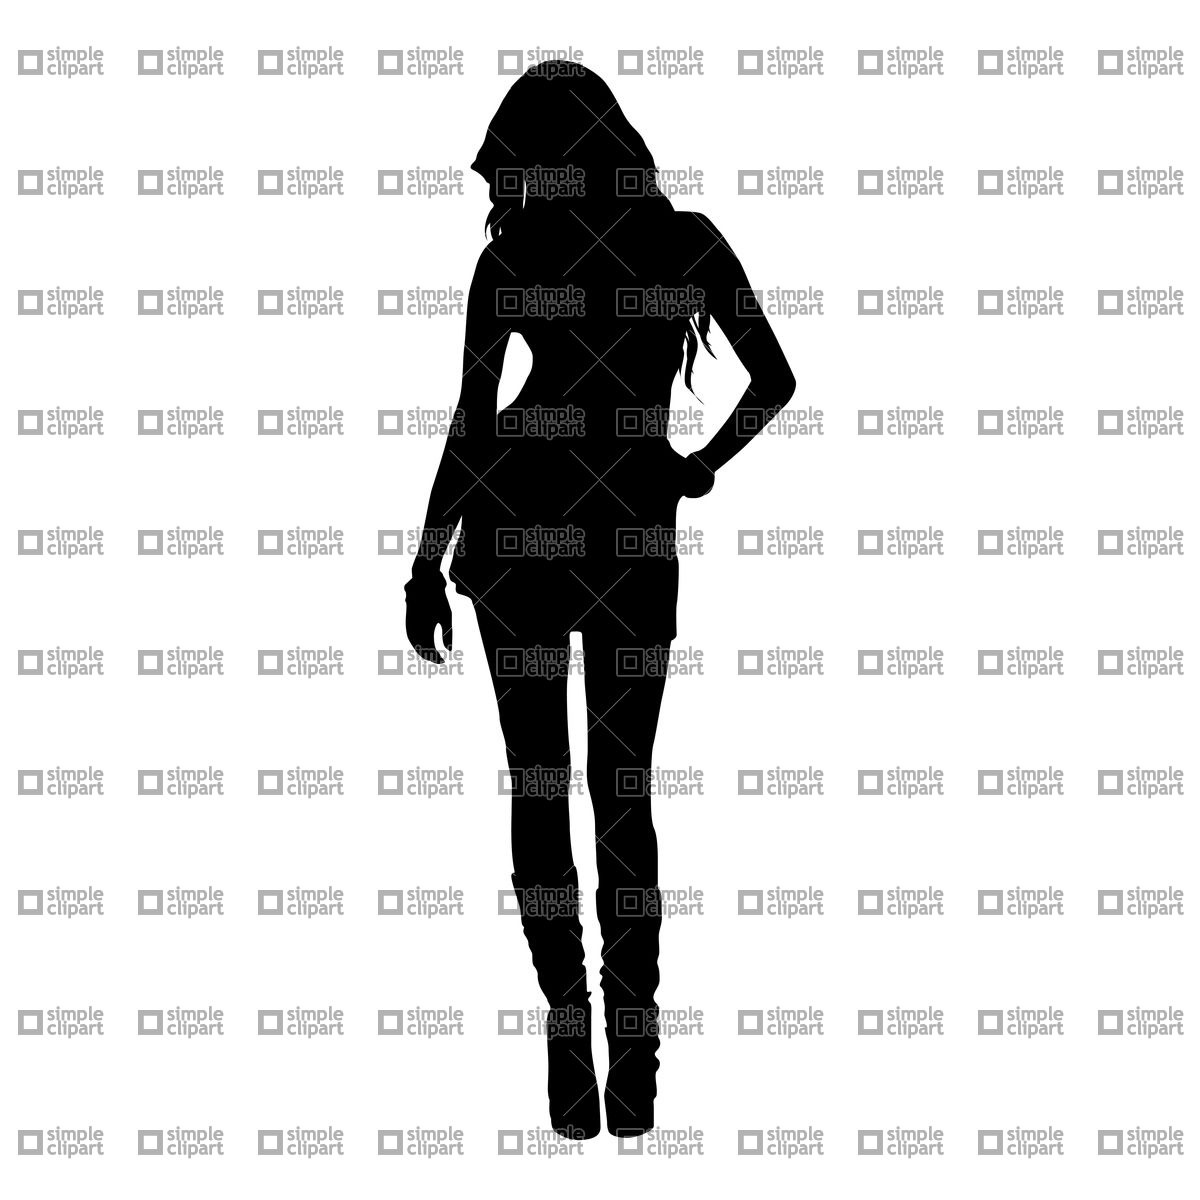 Clipart   People   Silhouette Of Beautiful Young Girl Vector Clipart